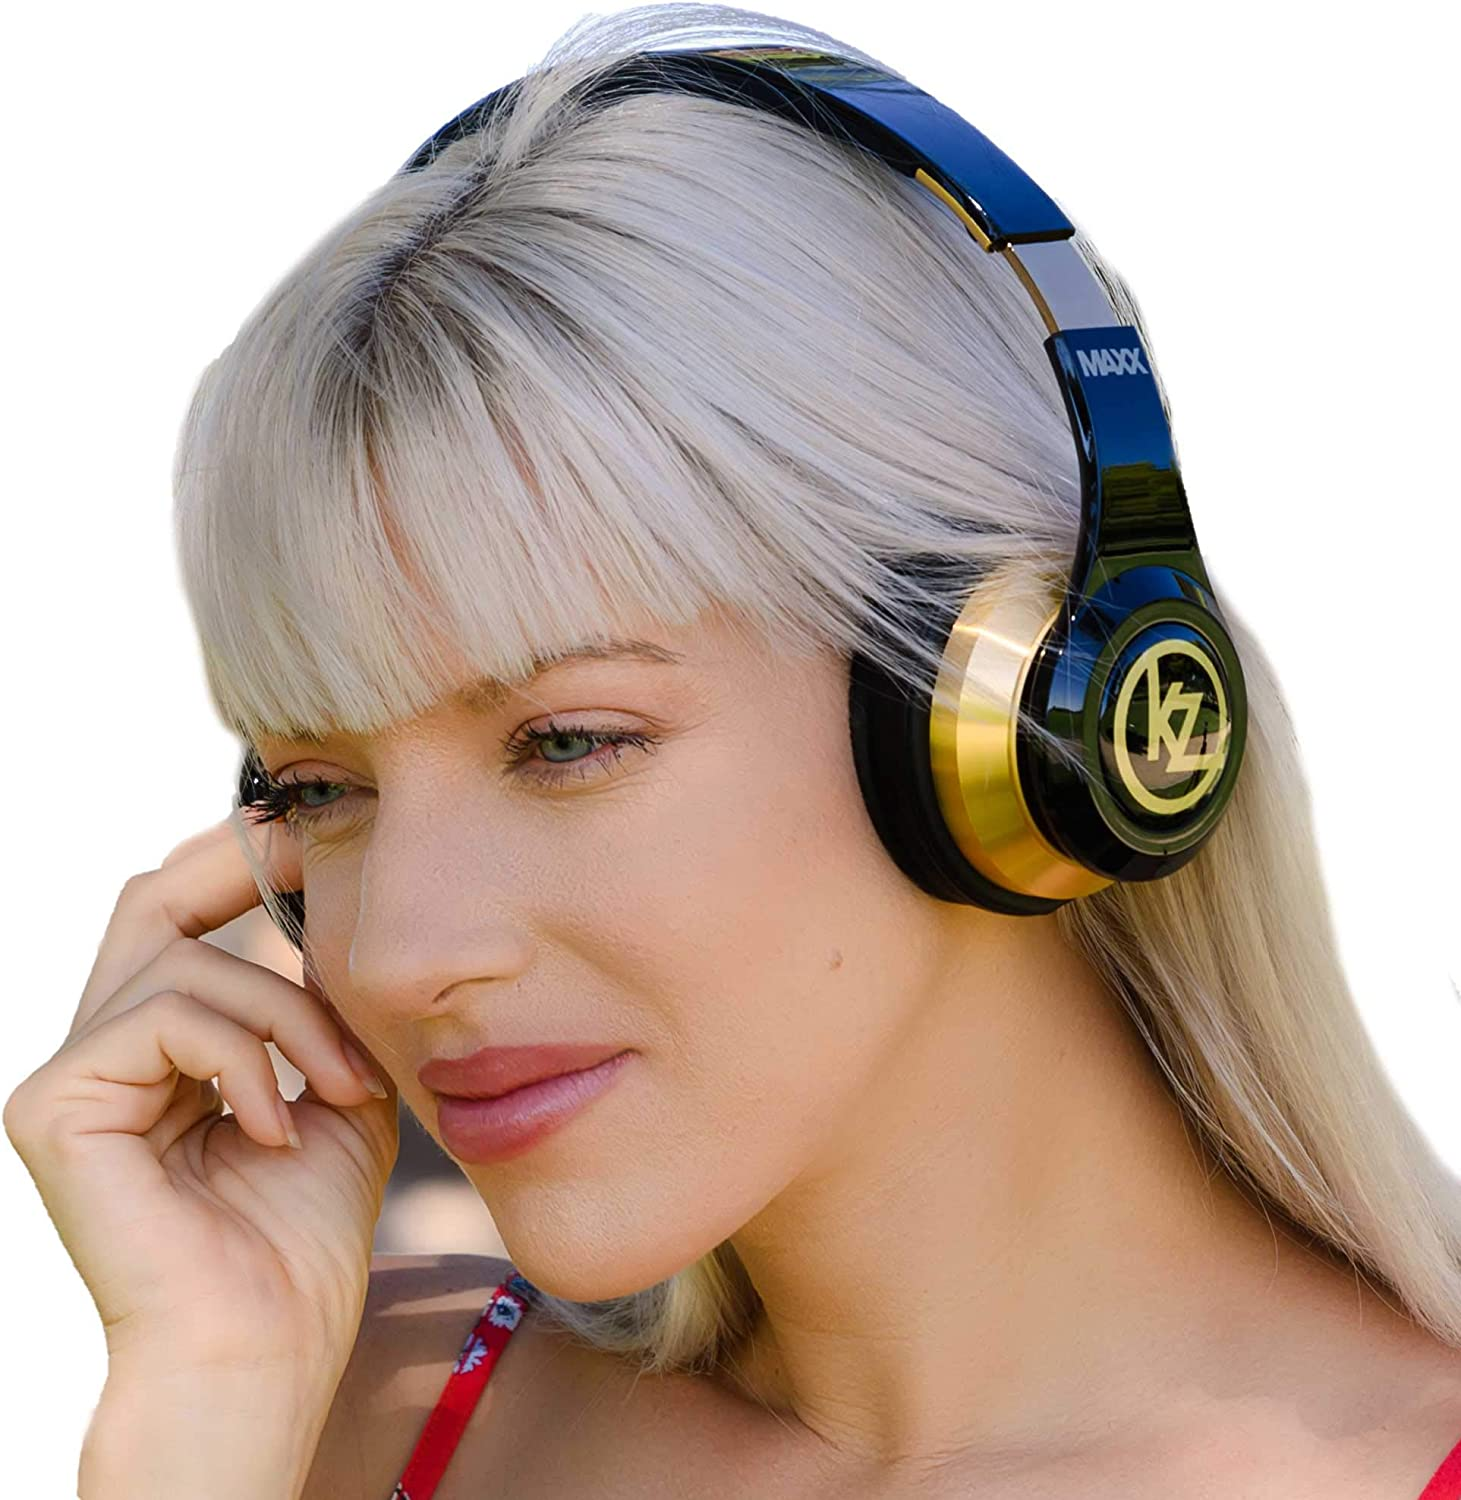 Krankz Maxx Wireless Active Noise Cancelling Over-Ear Headphones if you are use this headphones this is one of the best headphones for the noise cancelling and almost used for the market places